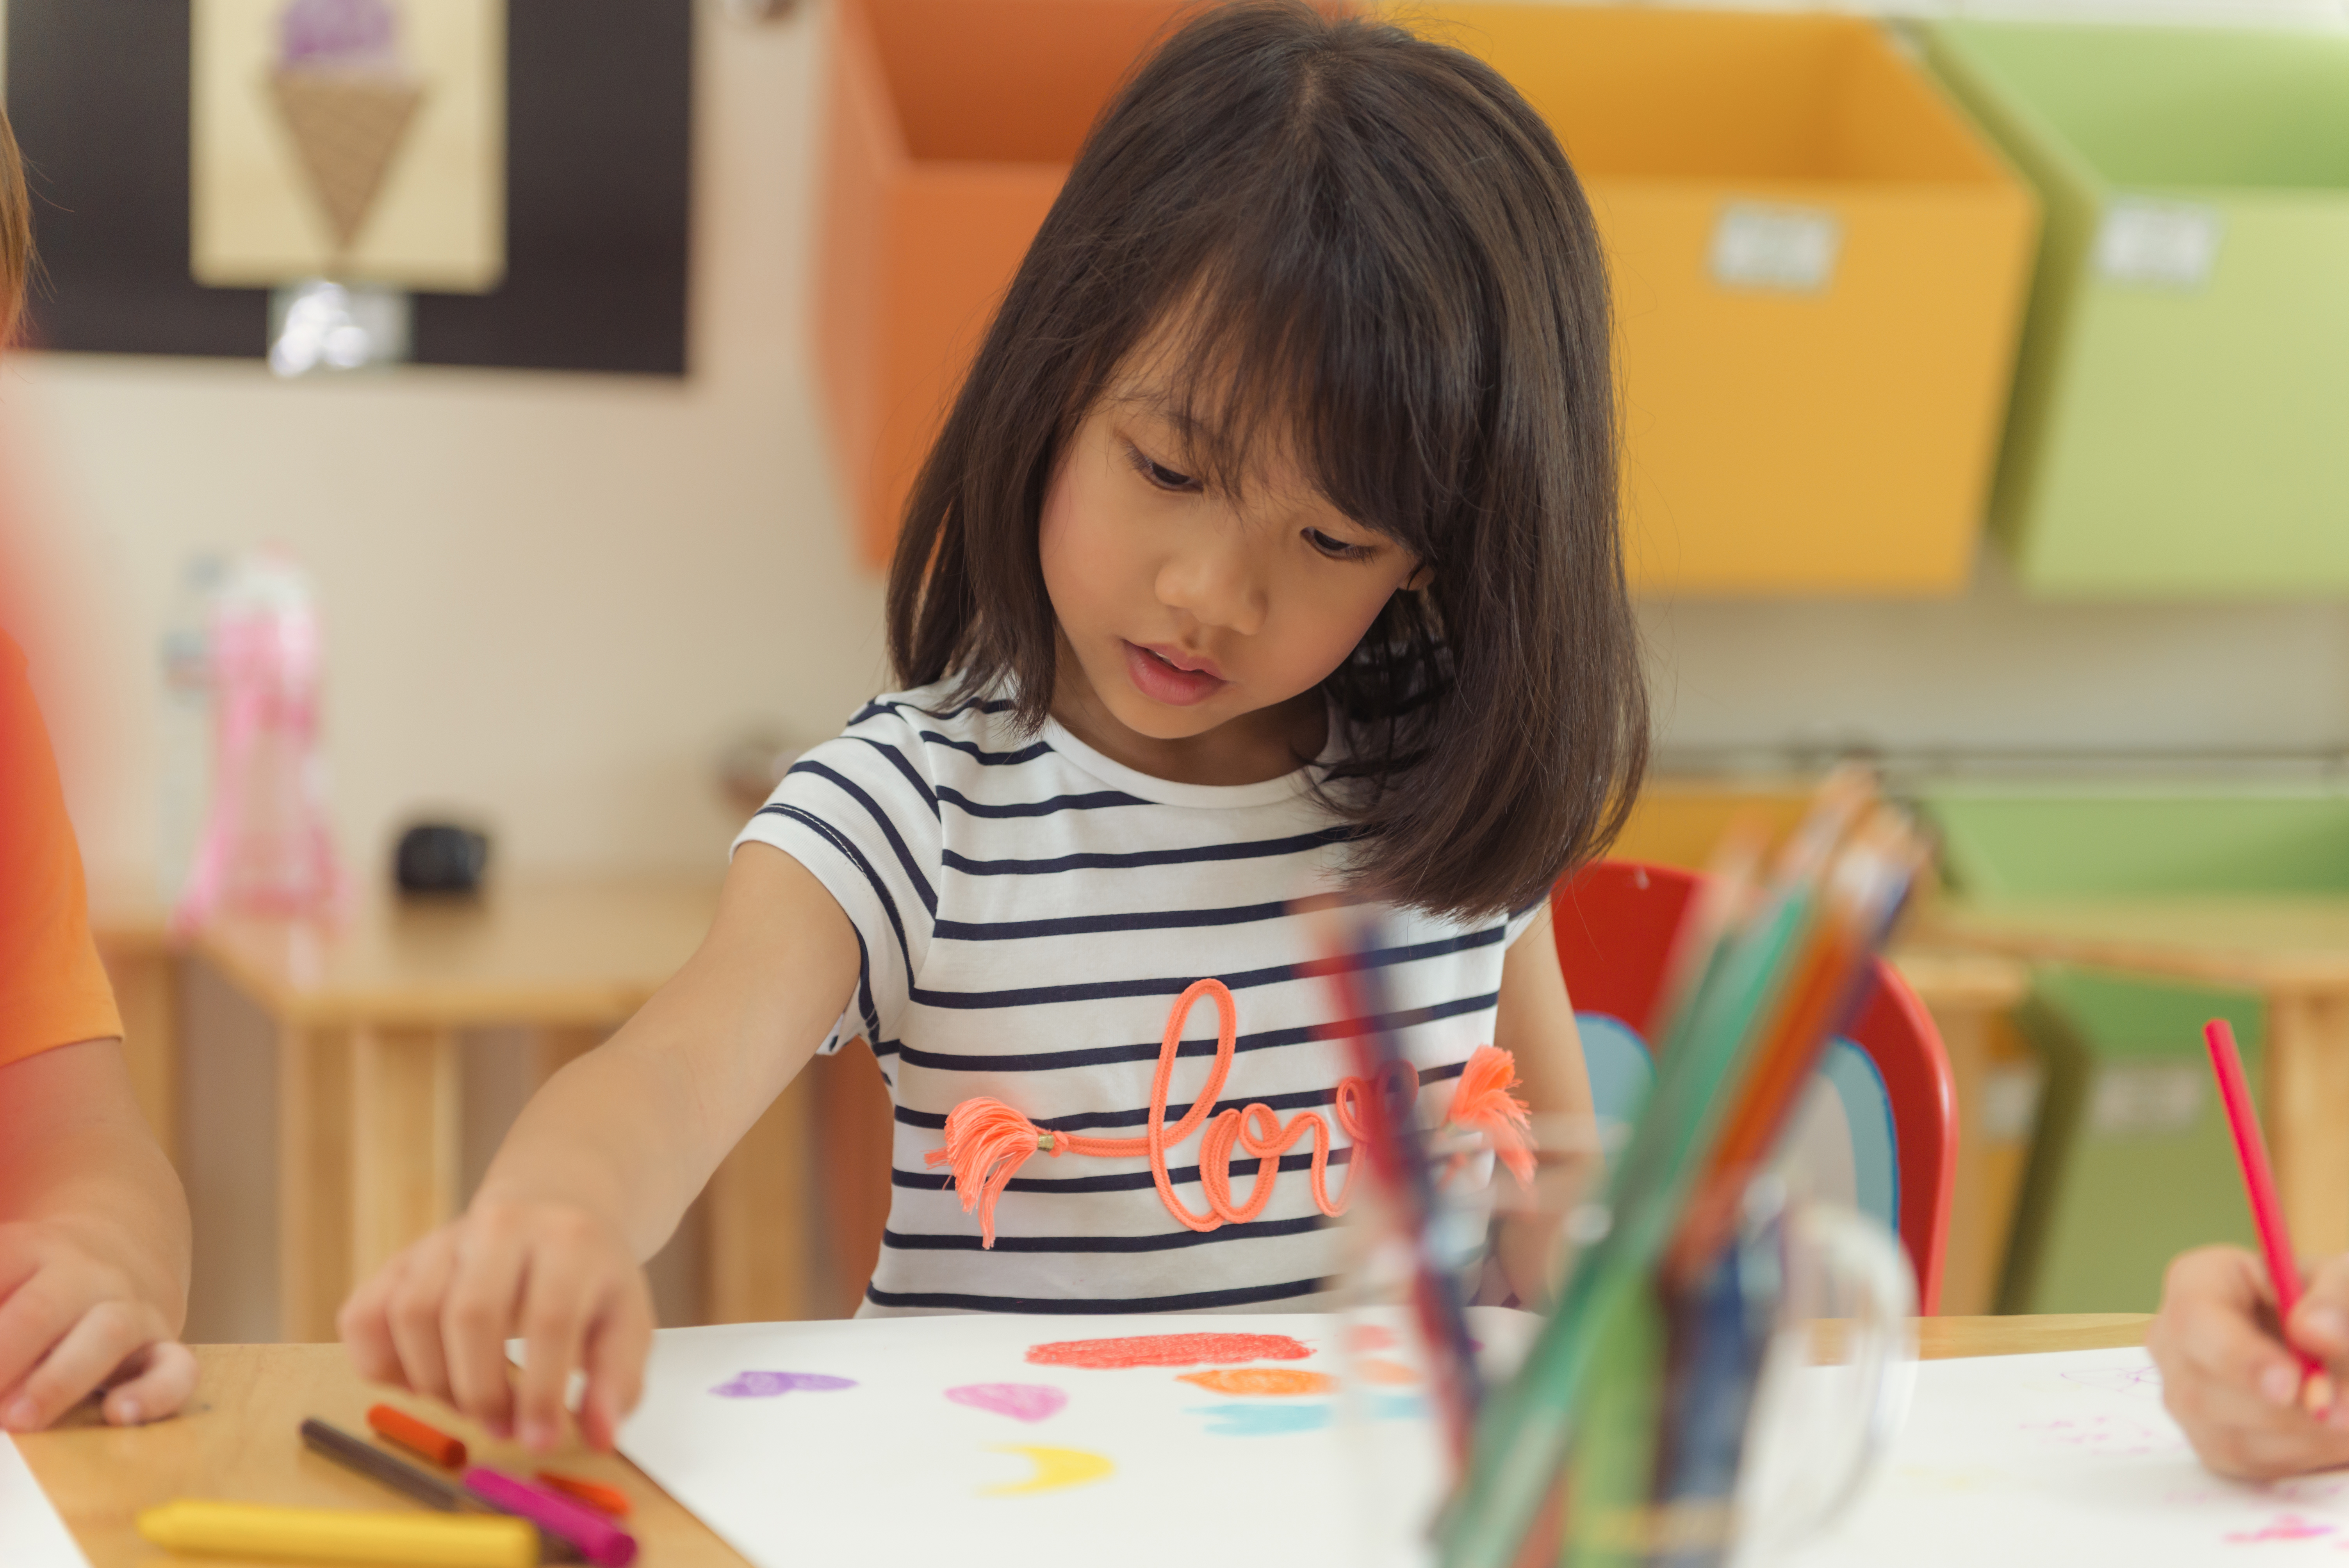 Girl drawing color pencils in kindergarten classroom, preschool and kid education concept, Vintage effect style pictures.